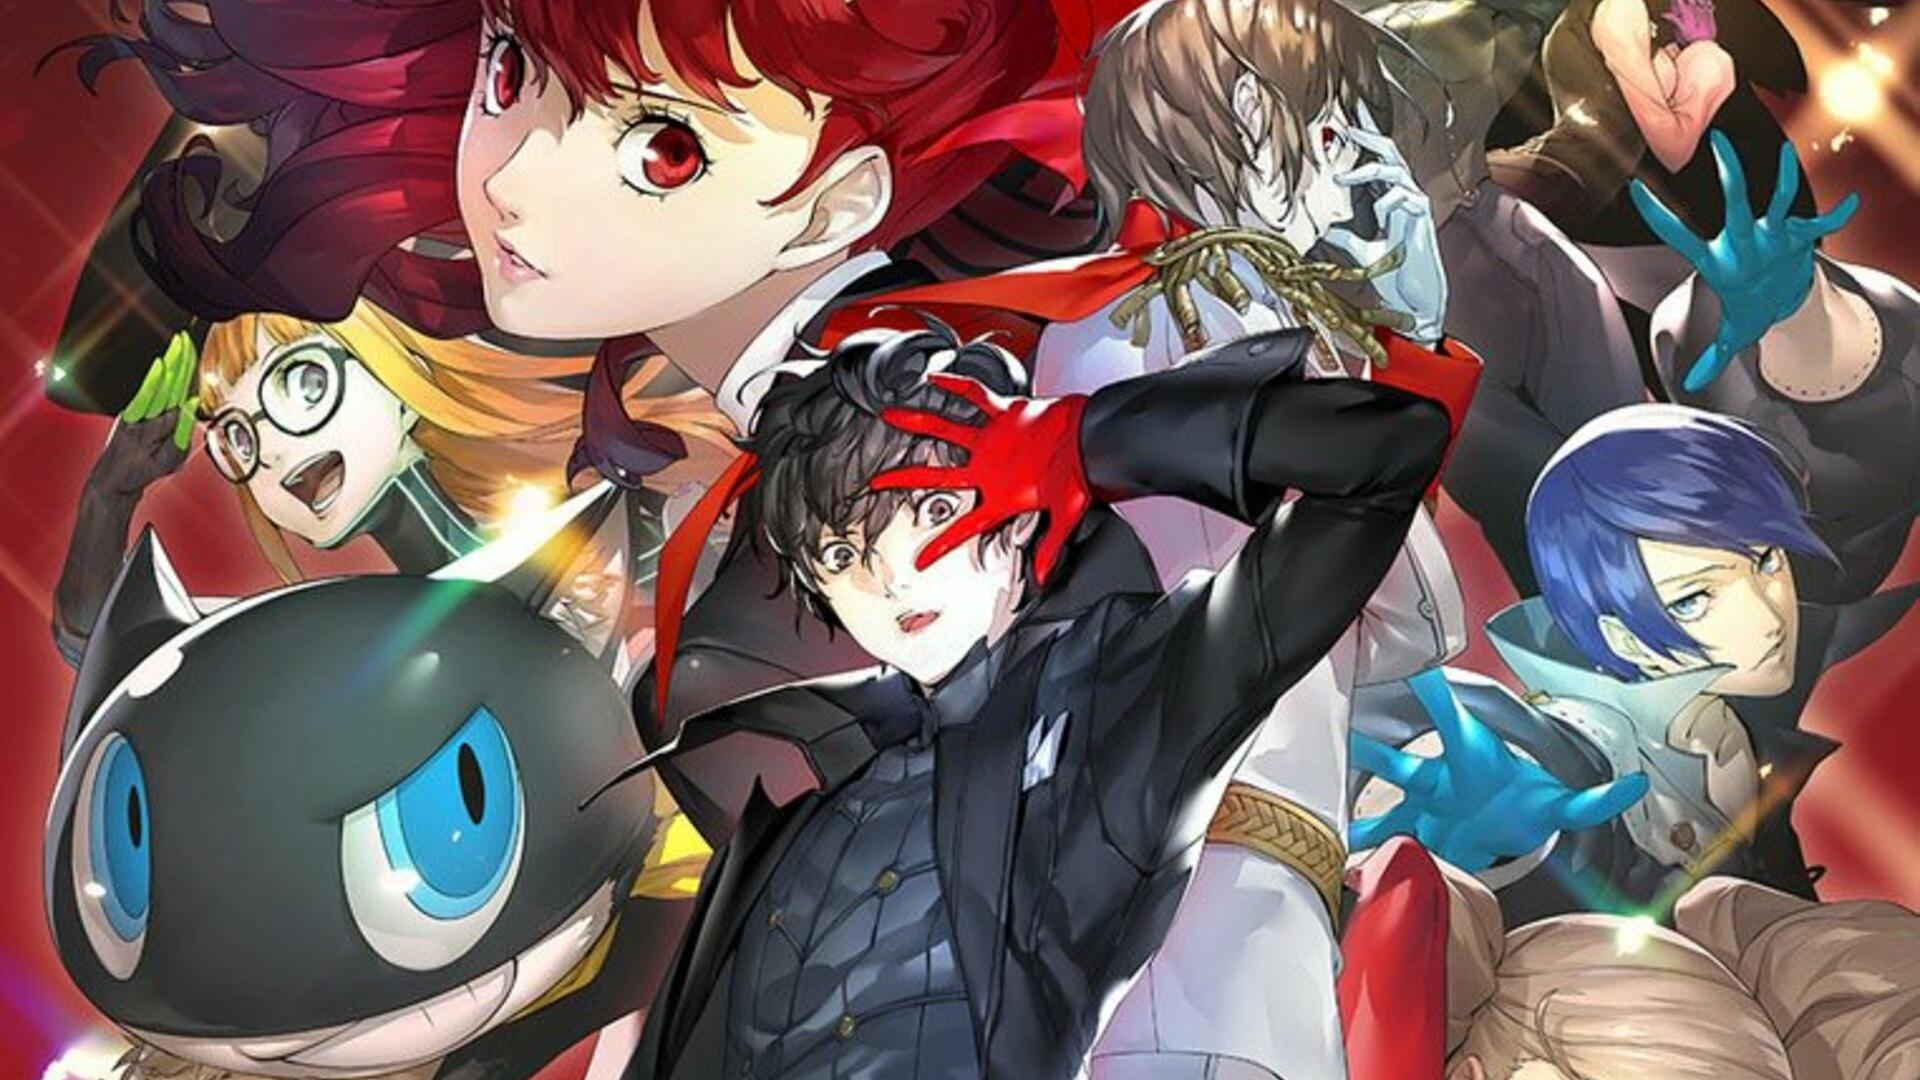 Here's Persona 5 Royal's Opening Cinematic